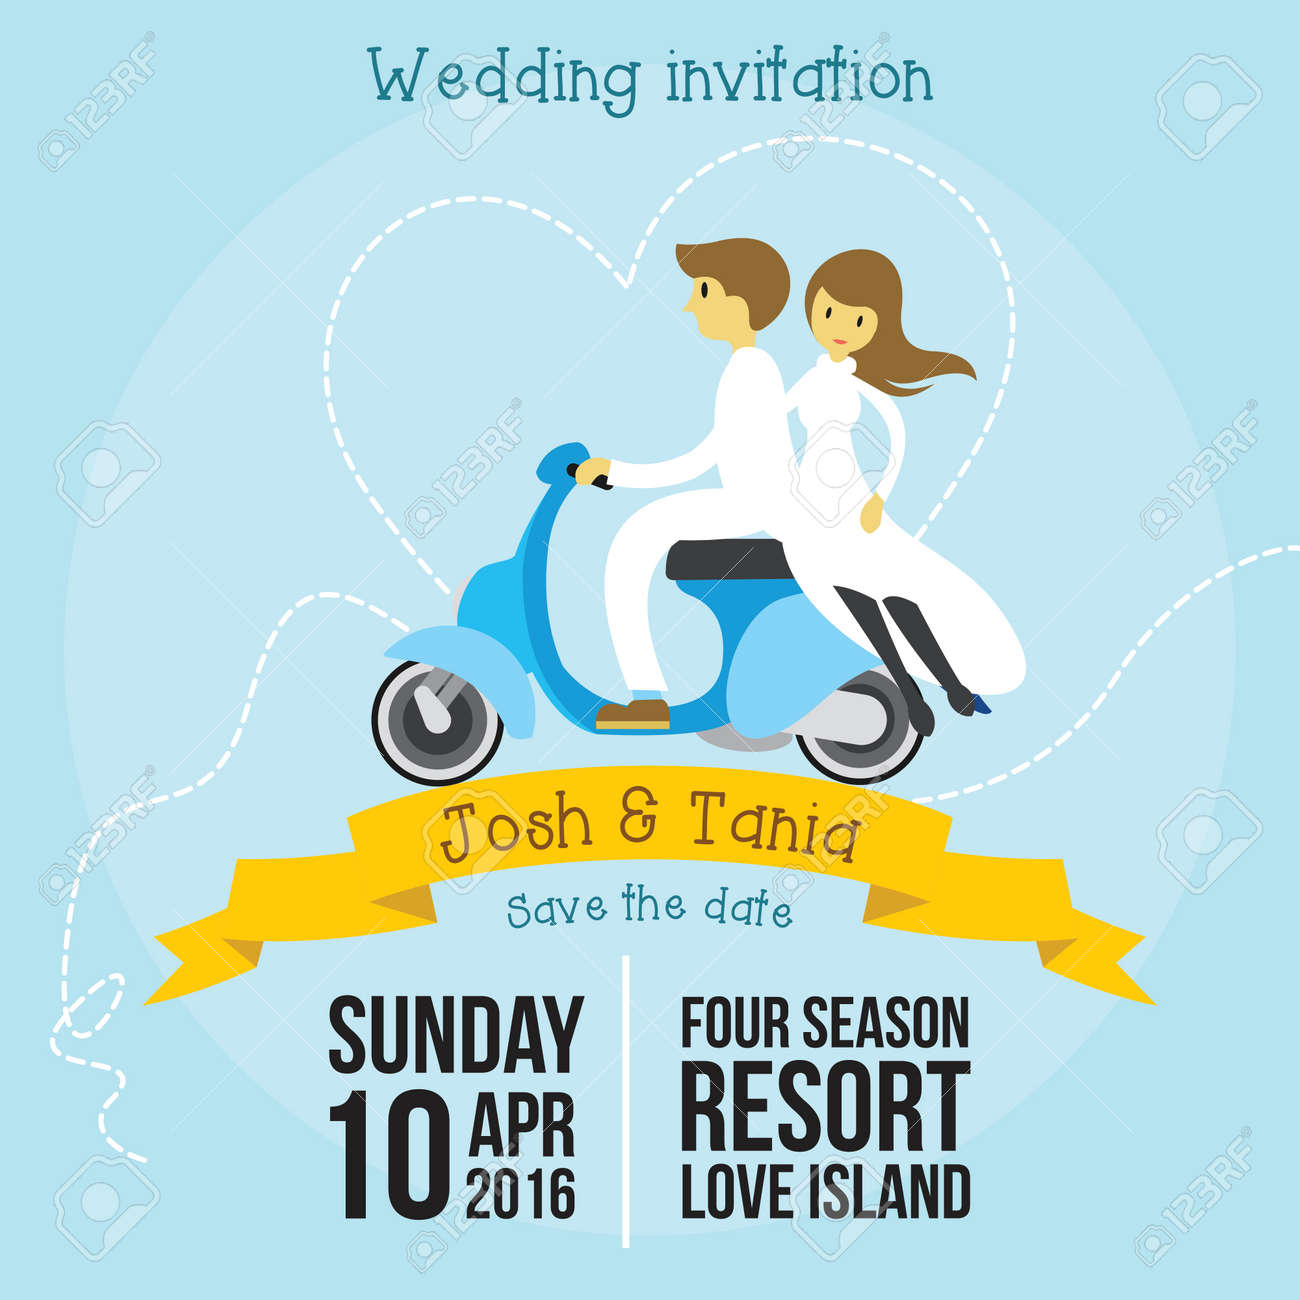 500+ vectors, stock photos & psd files. Cute Wedding Invitation Cartoon Style Template With Soft Blue Background Vector Illustration Royalty Free Cliparts Vectors And Stock Illustration Image 67376962